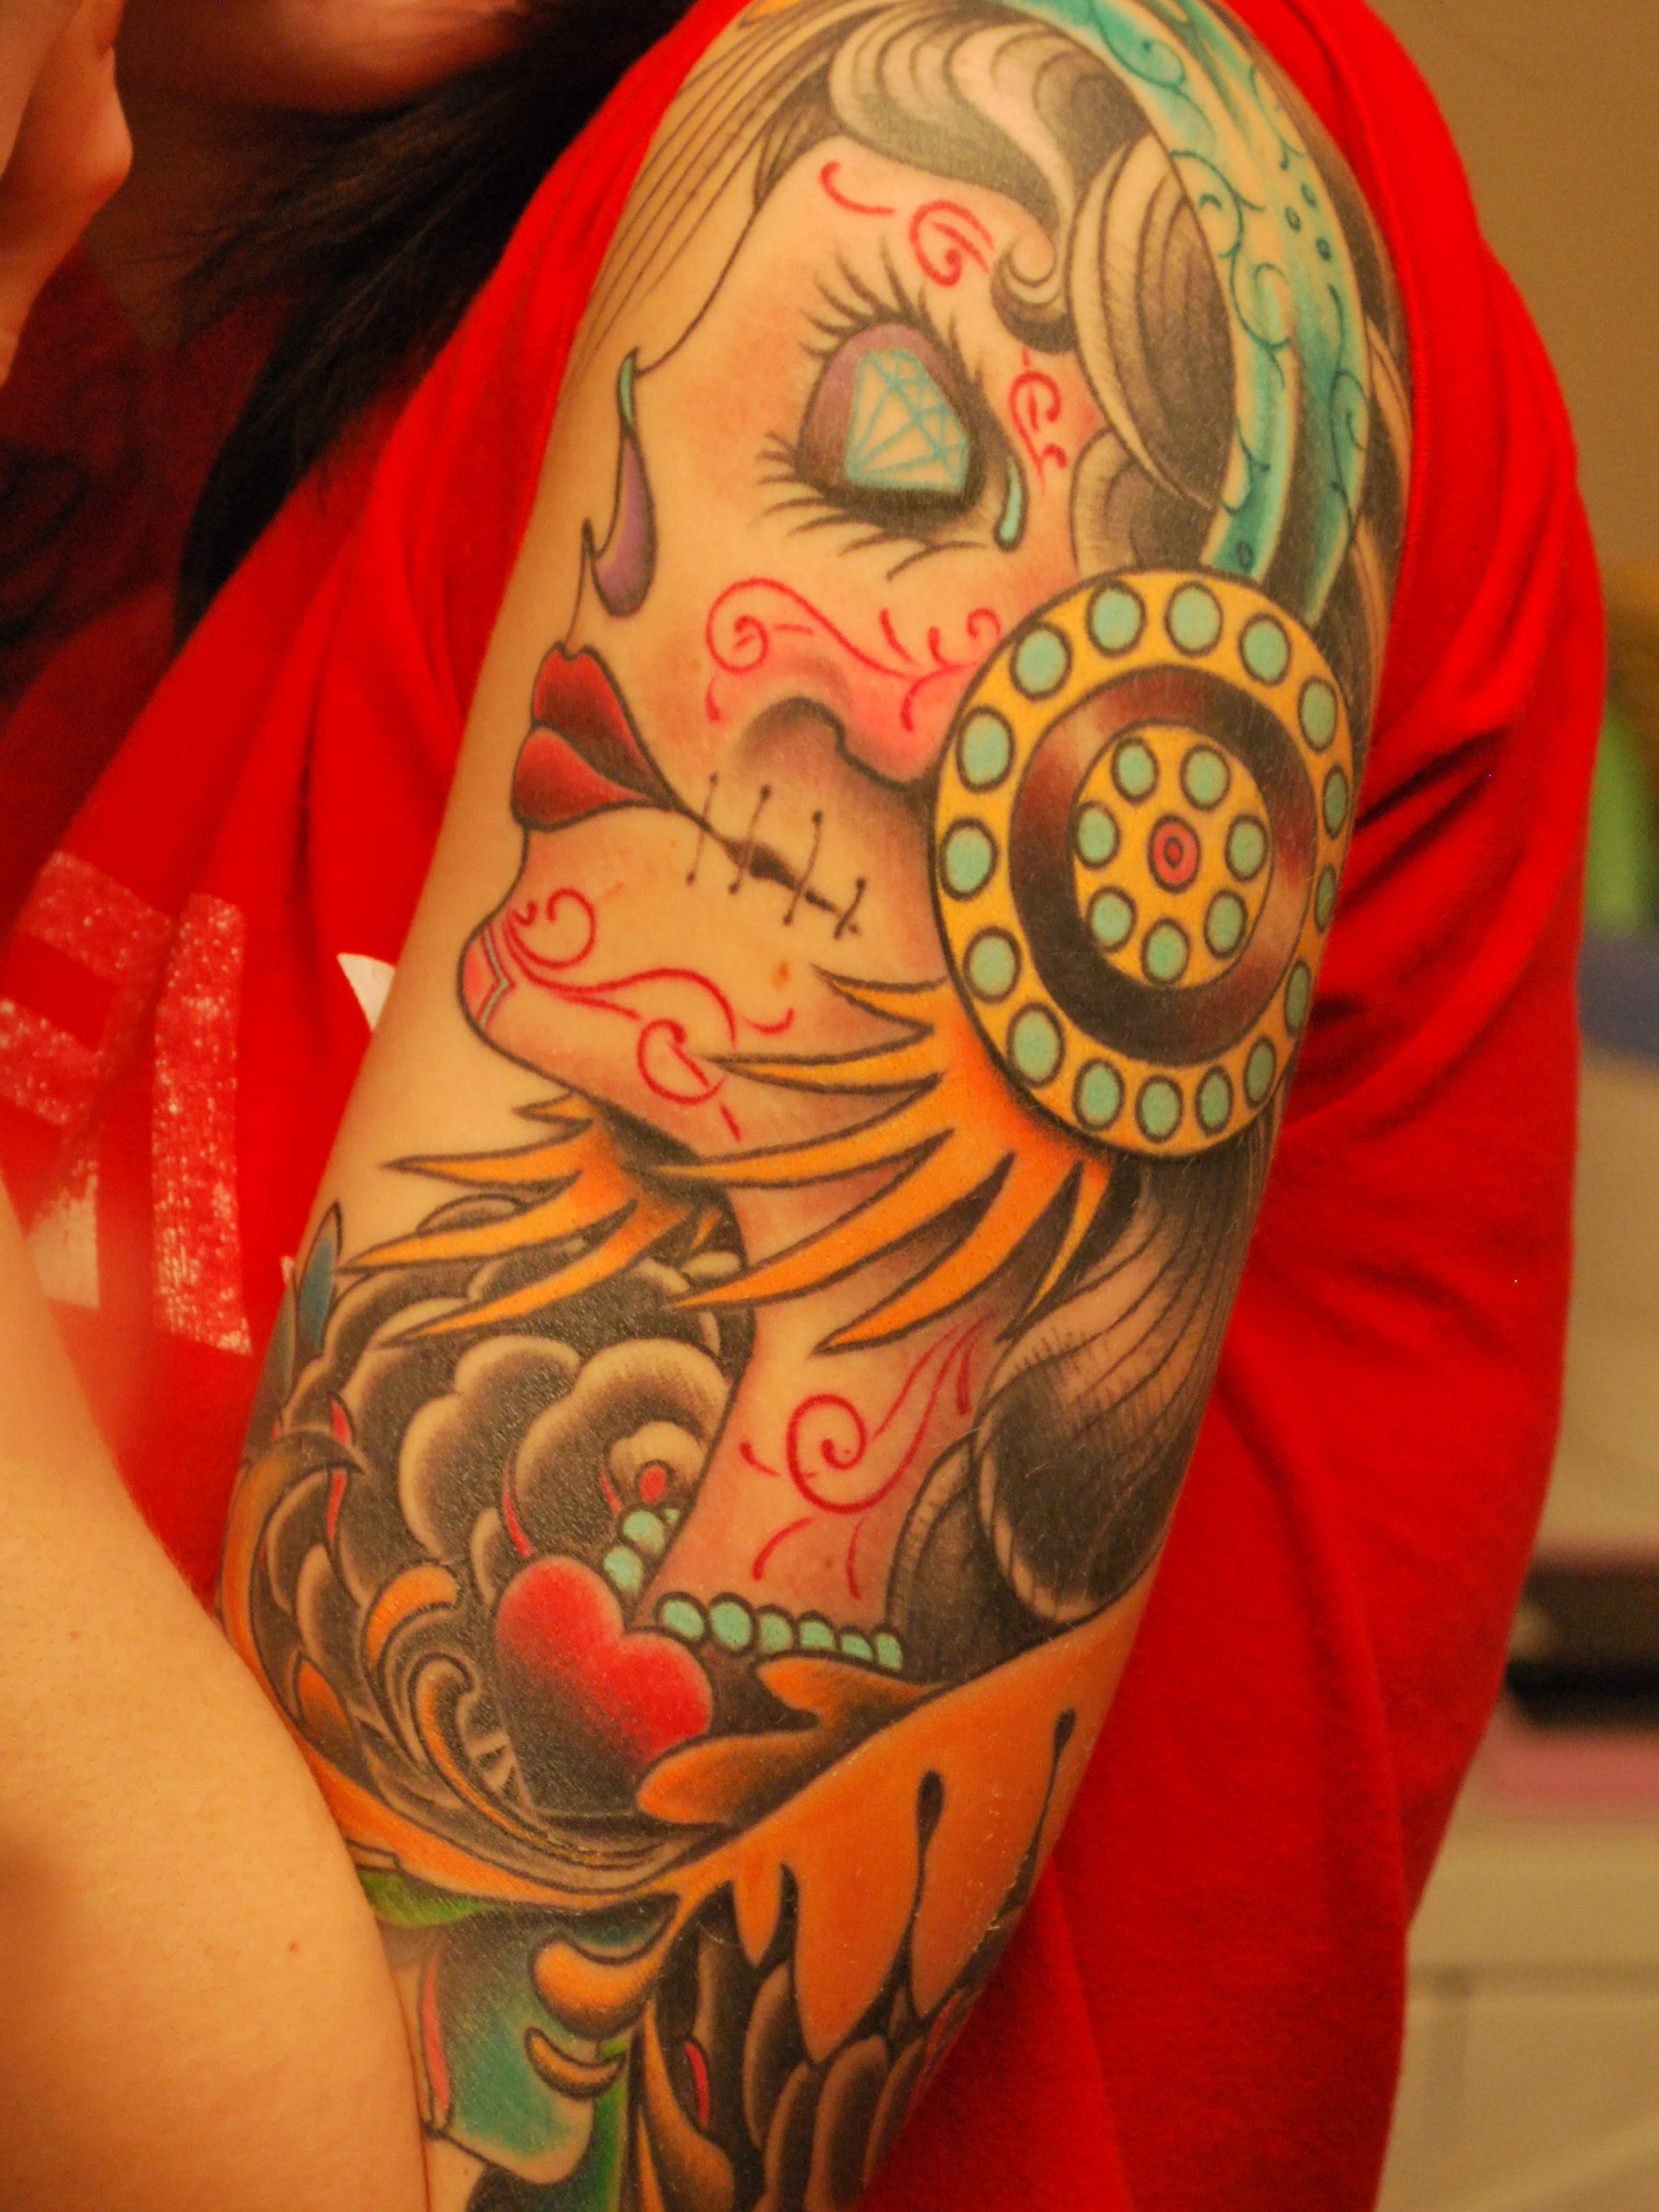 I Want A Sleeve Maybe When I Lose Half My Arm Oh Let This Baby